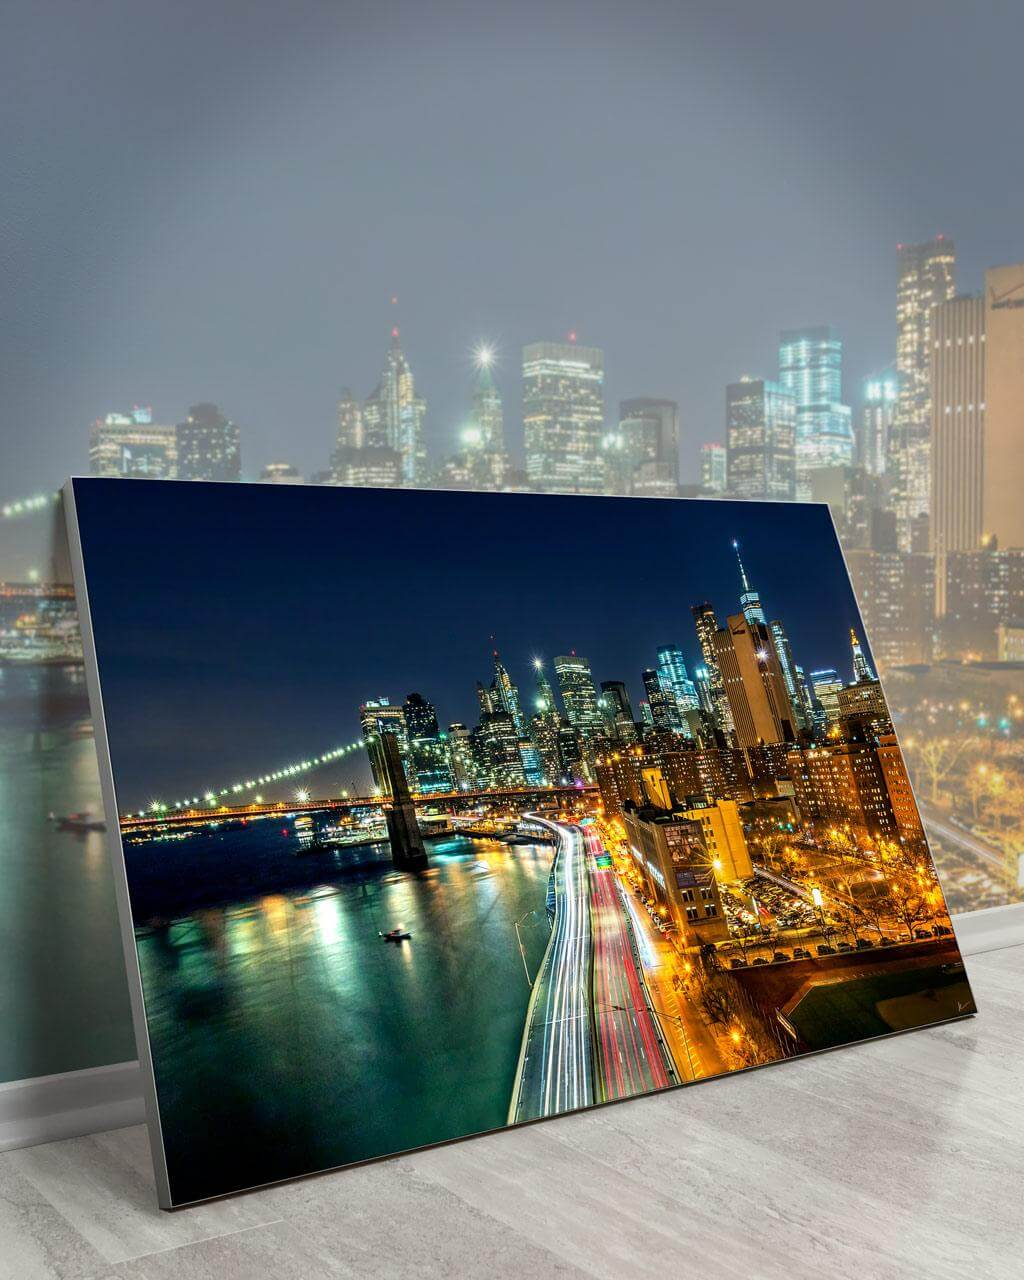 Gigantic Big Biggest Massive Huge Large Largest Giant Wall Décor Art Backlit Fabric Home Deco Artwork Artist New York City Street Icon Aerial Scenic Peter Alessandria Lights Neon Cars